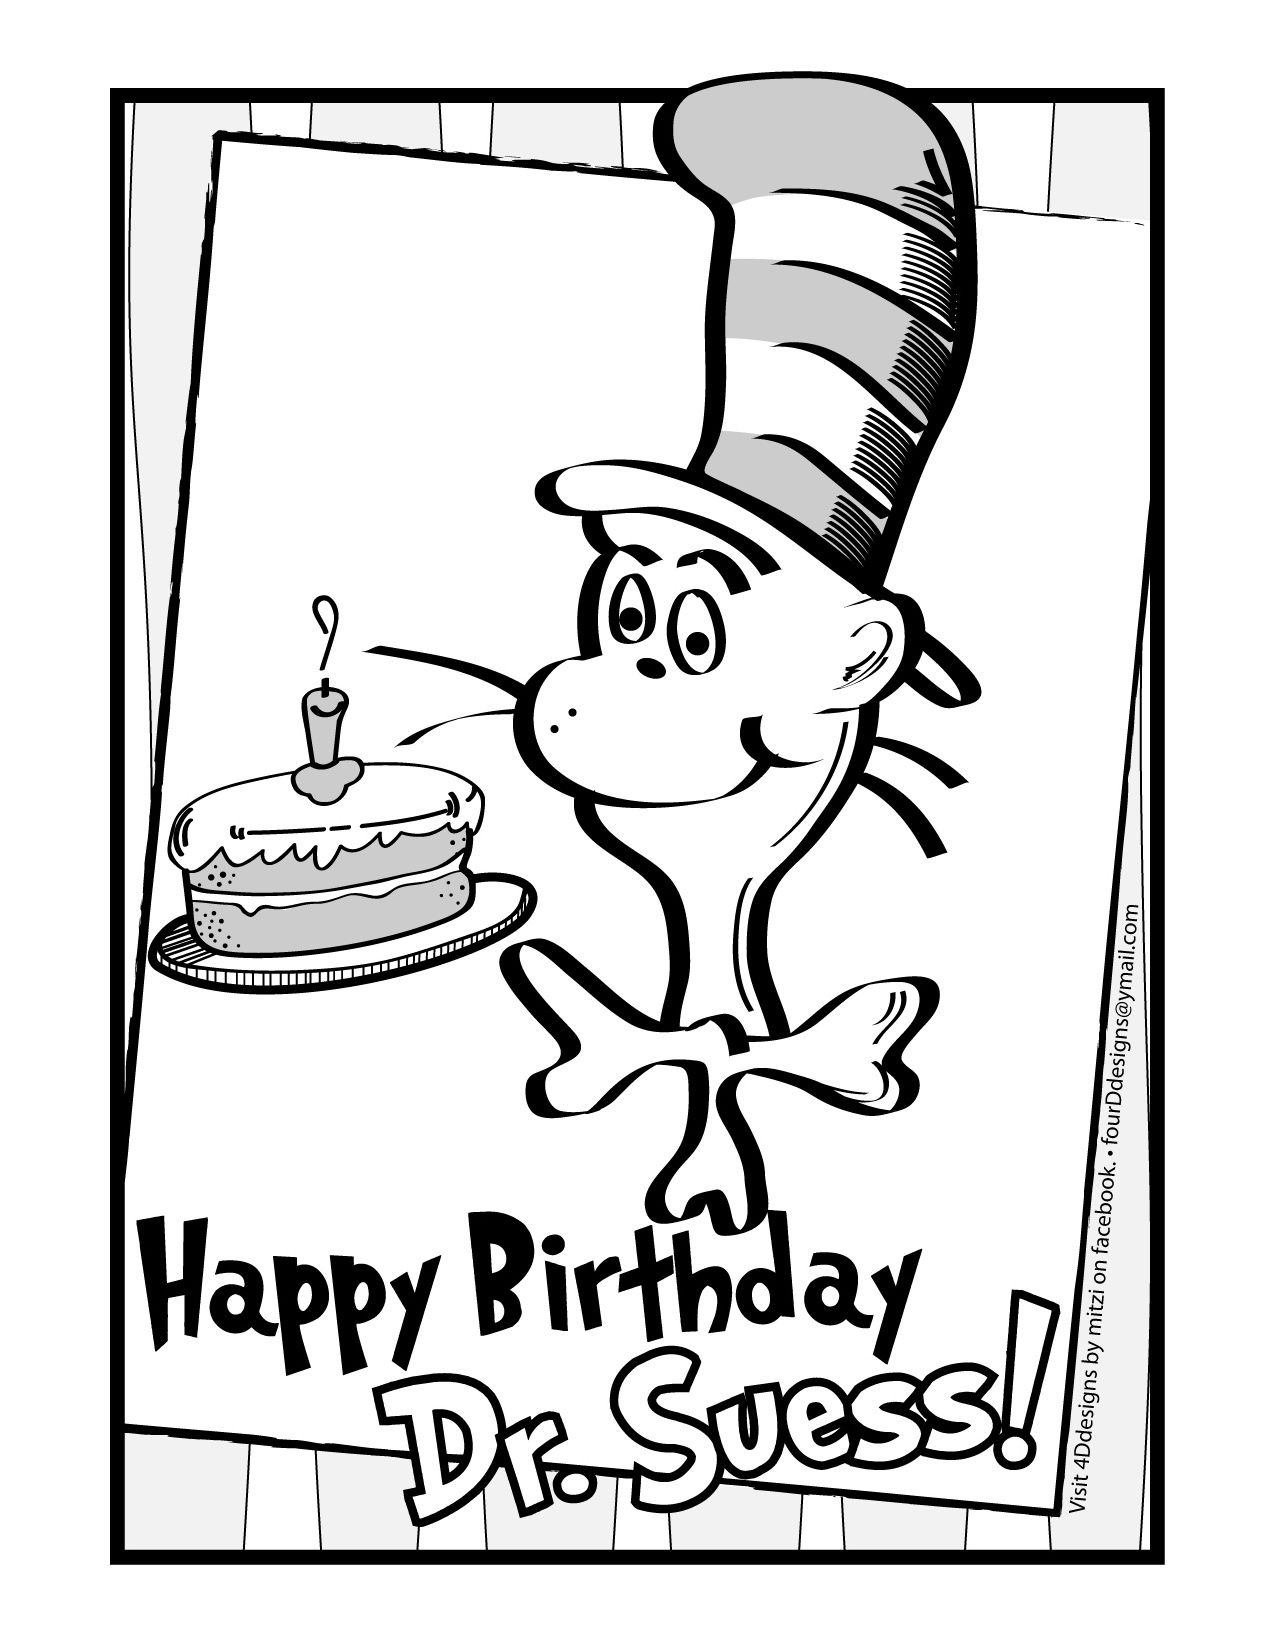 Happy Birthday Dr. Suess! Coloring Page • Free Download | Dr Seuss - Free Printable Dr Seuss Coloring Pages